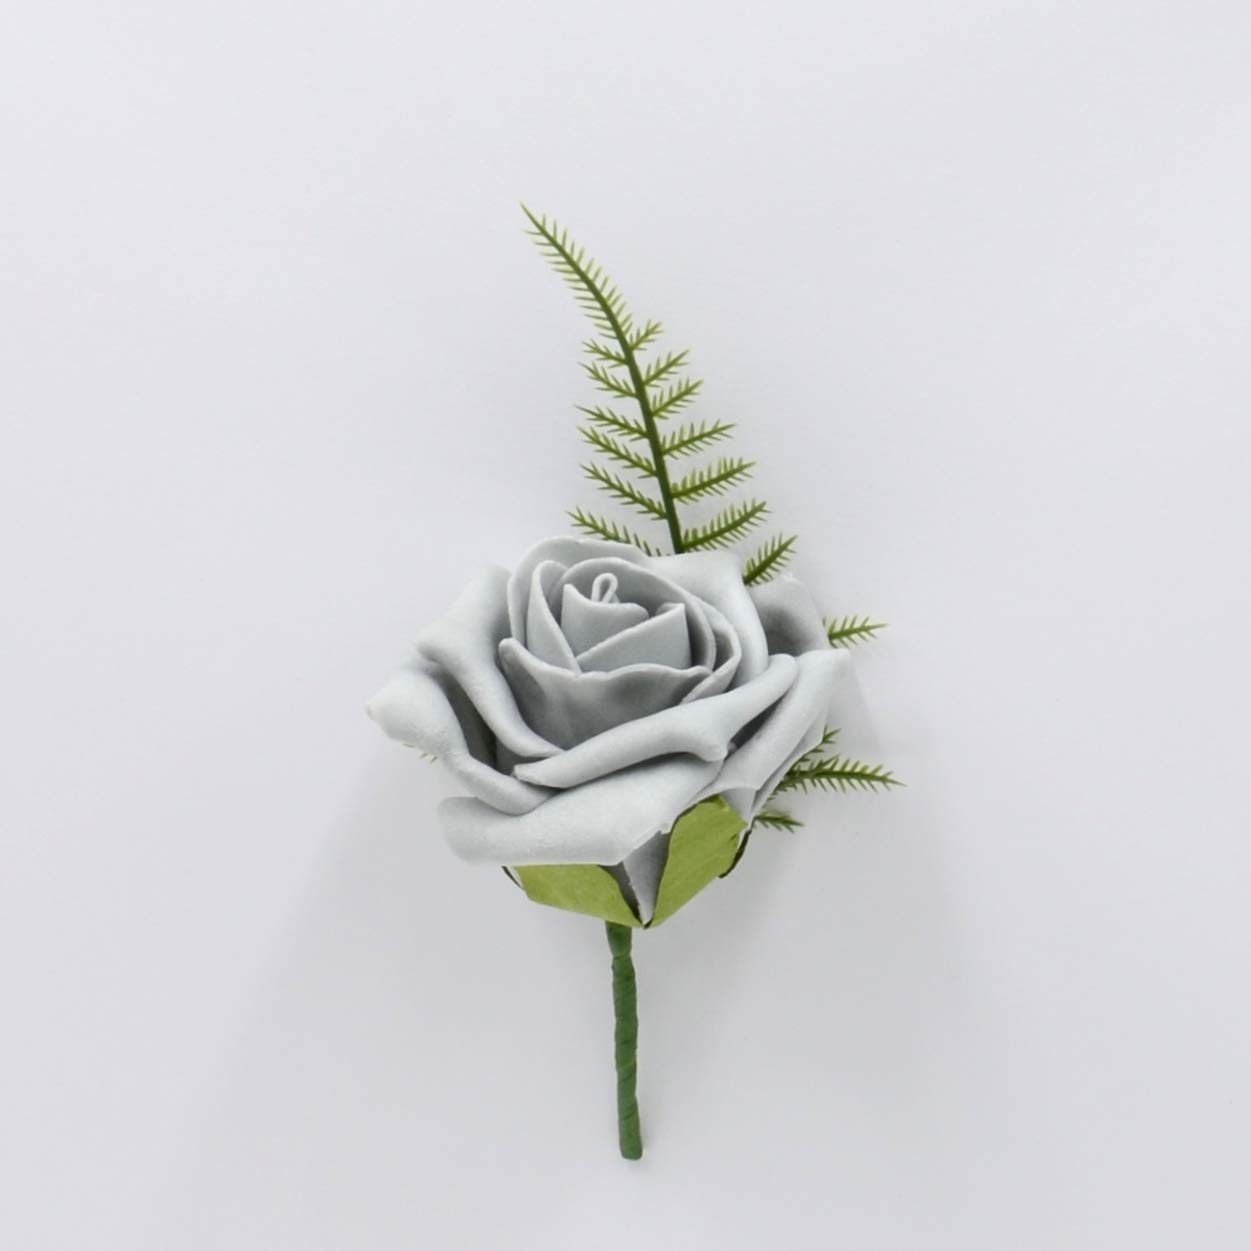 Artificial Wedding Flowers Hand-Made by Petals Polly, Foam Rose Buttonhole in Grey PETALS POLLY FLOWERS